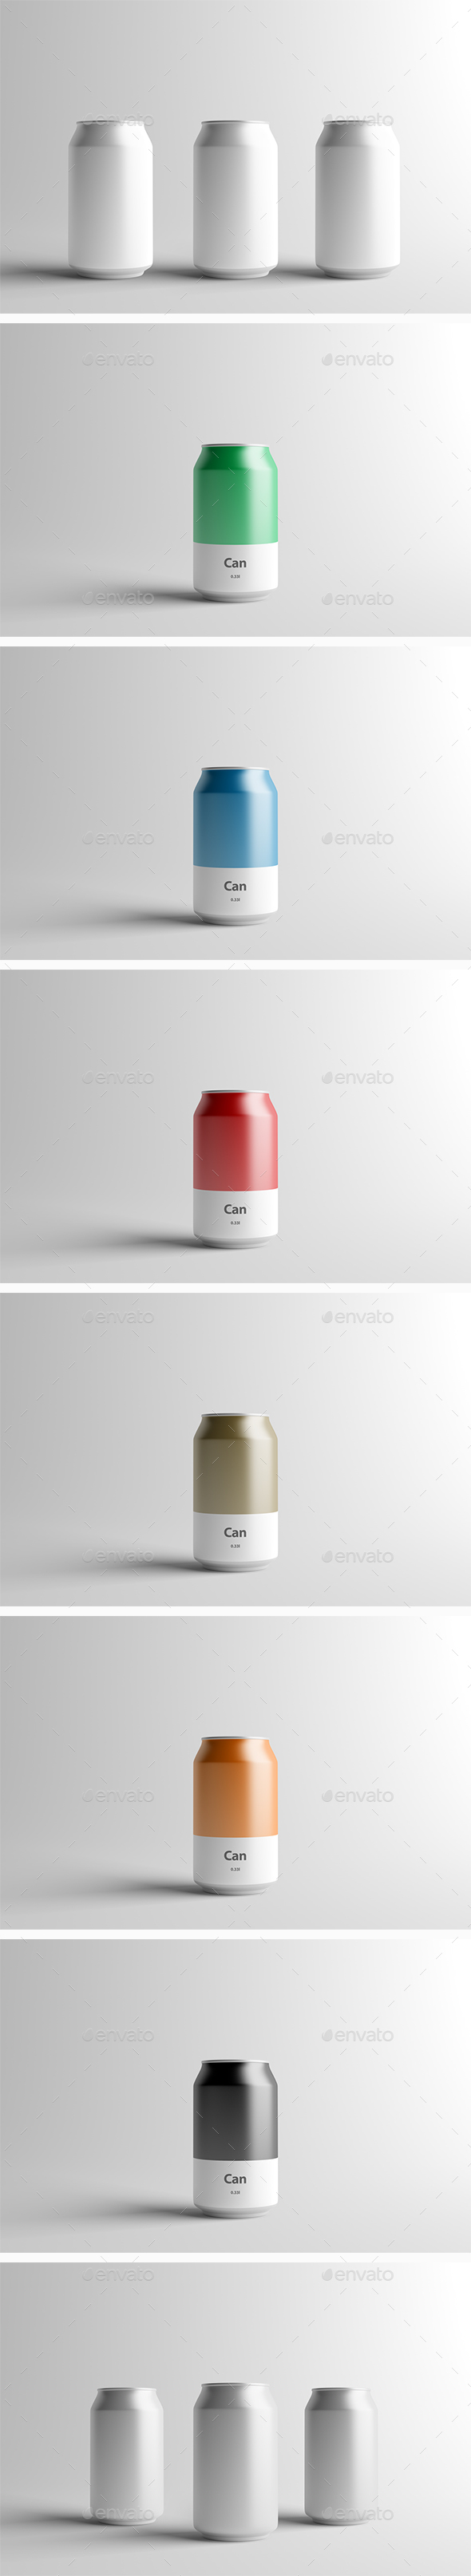 Can Mock-Up - 330ml - Food and Drink Packaging